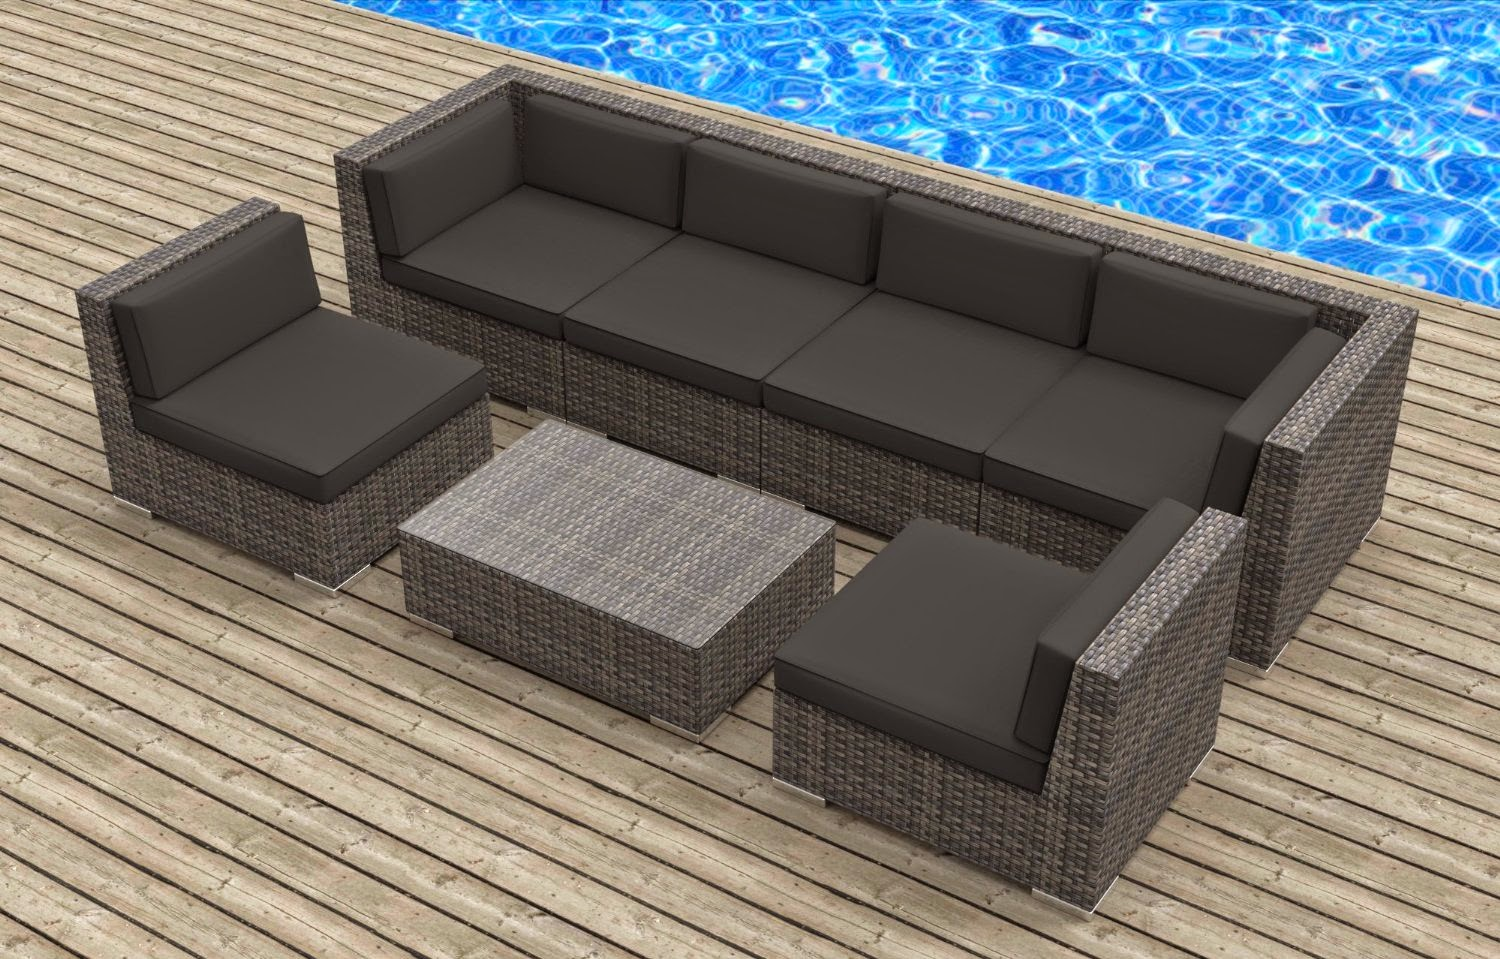 Urban furnishing modern outdoor backyard wicker rattan for Wicker patio furniture